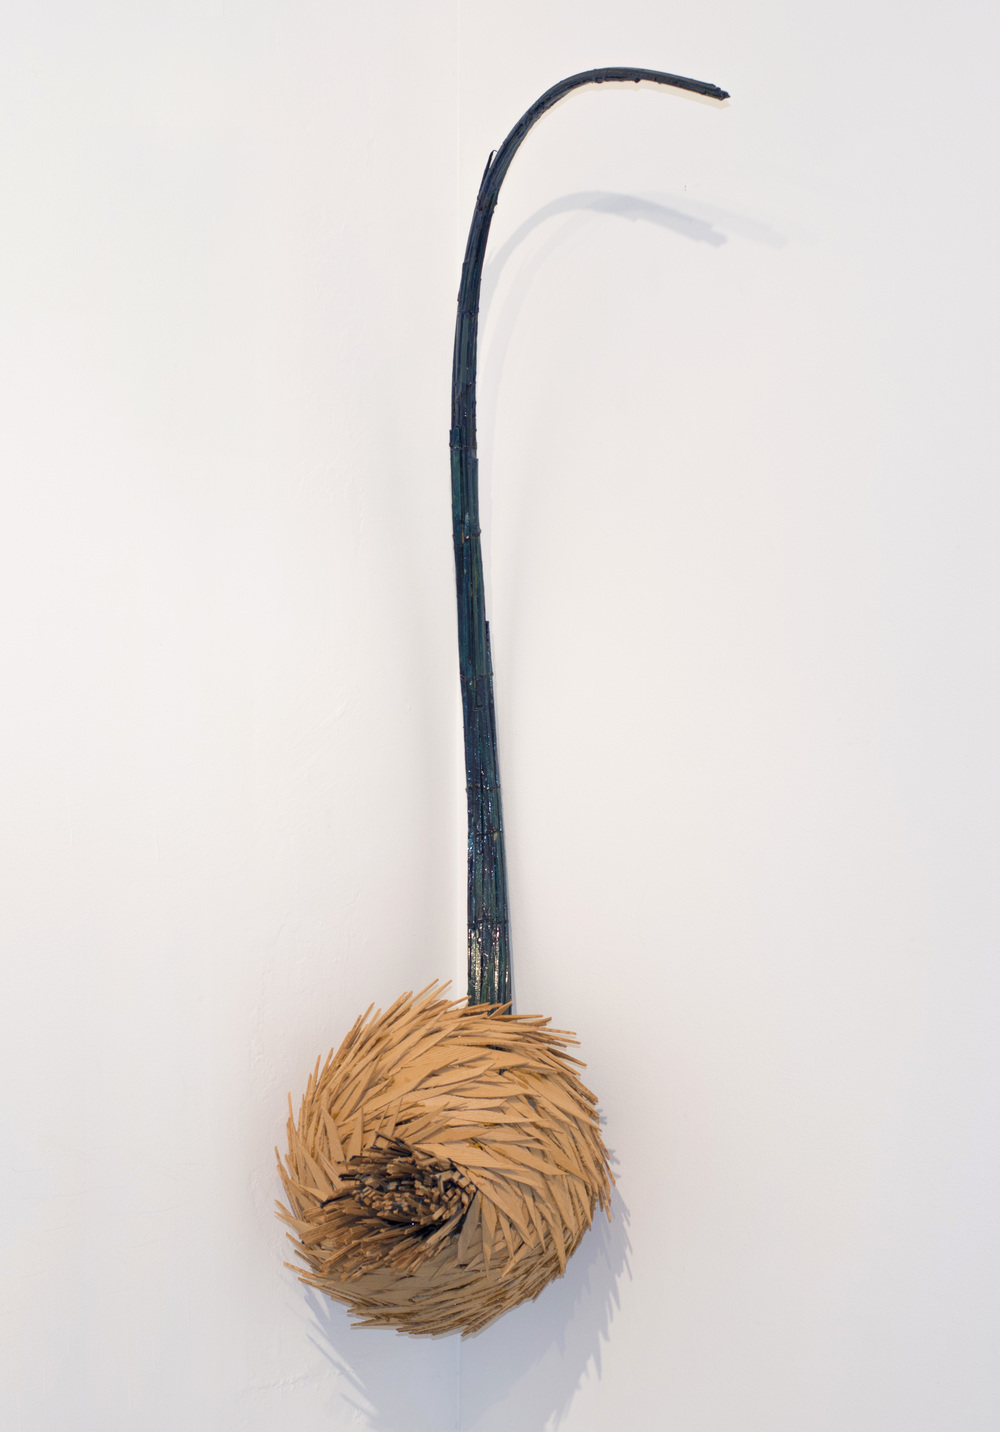 Fritz Dietel    Thistle  ,  2004   Oak, maple, pigmented epoxy 60 x 24 x 24 inches